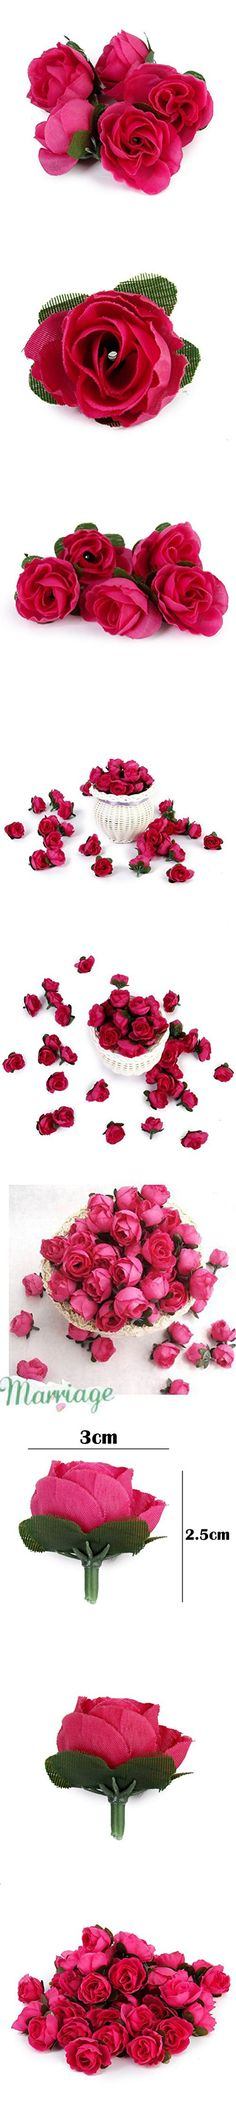 Tinksky 50pcs 3cm Artificial Roses Flower Heads Wedding Decoration (Rosy)